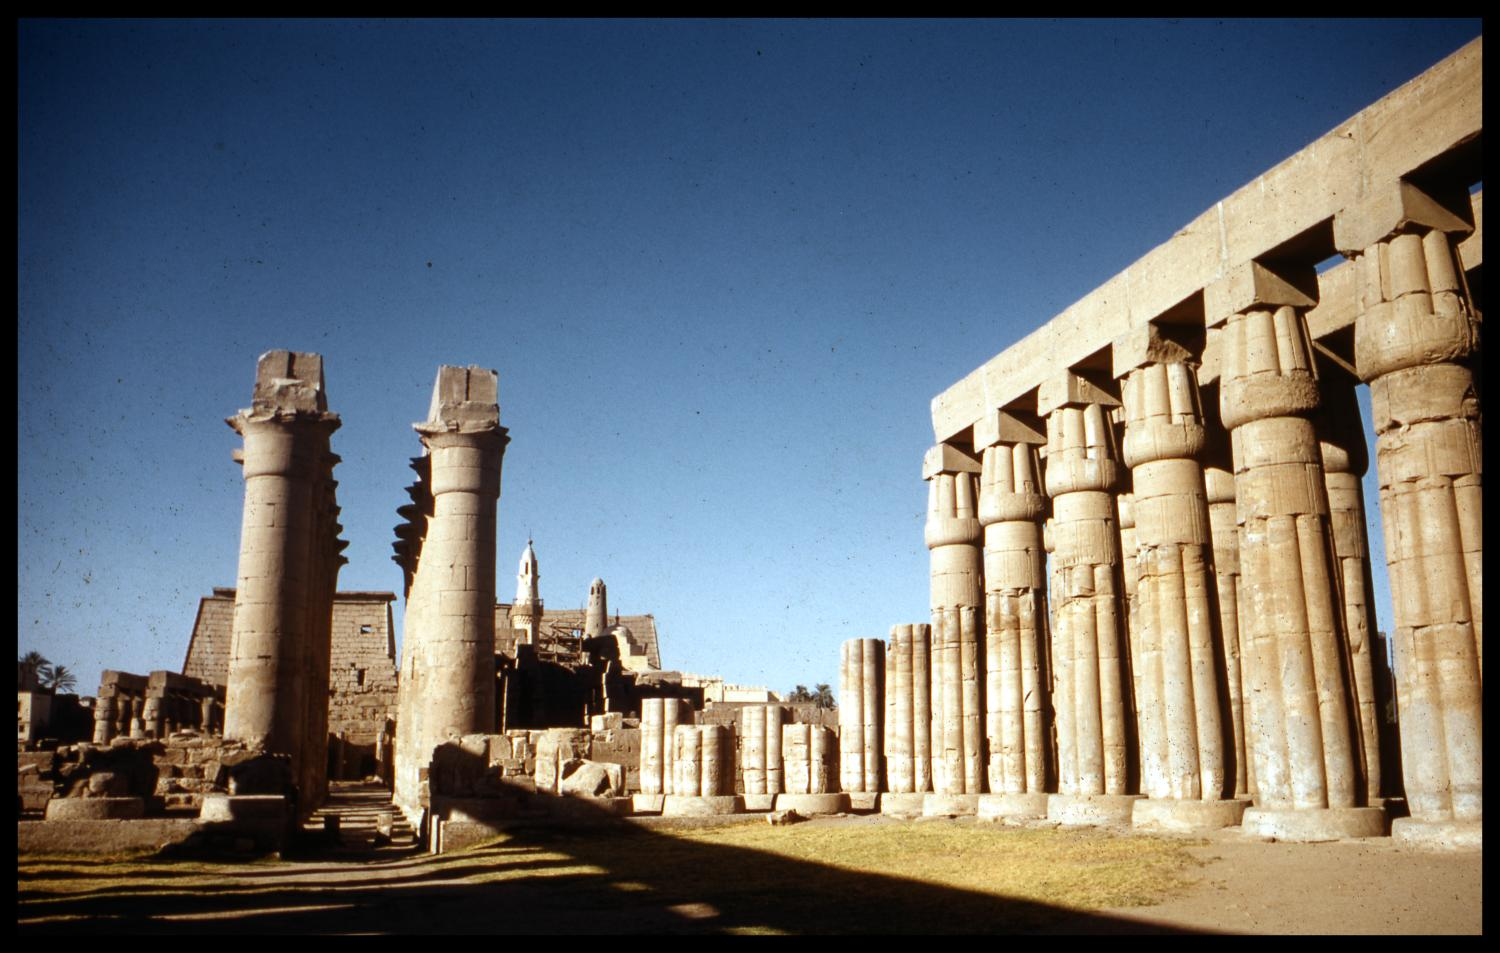 [Amenhotep's Colonnade]                                                                                                      [Sequence #]: 1 of 1